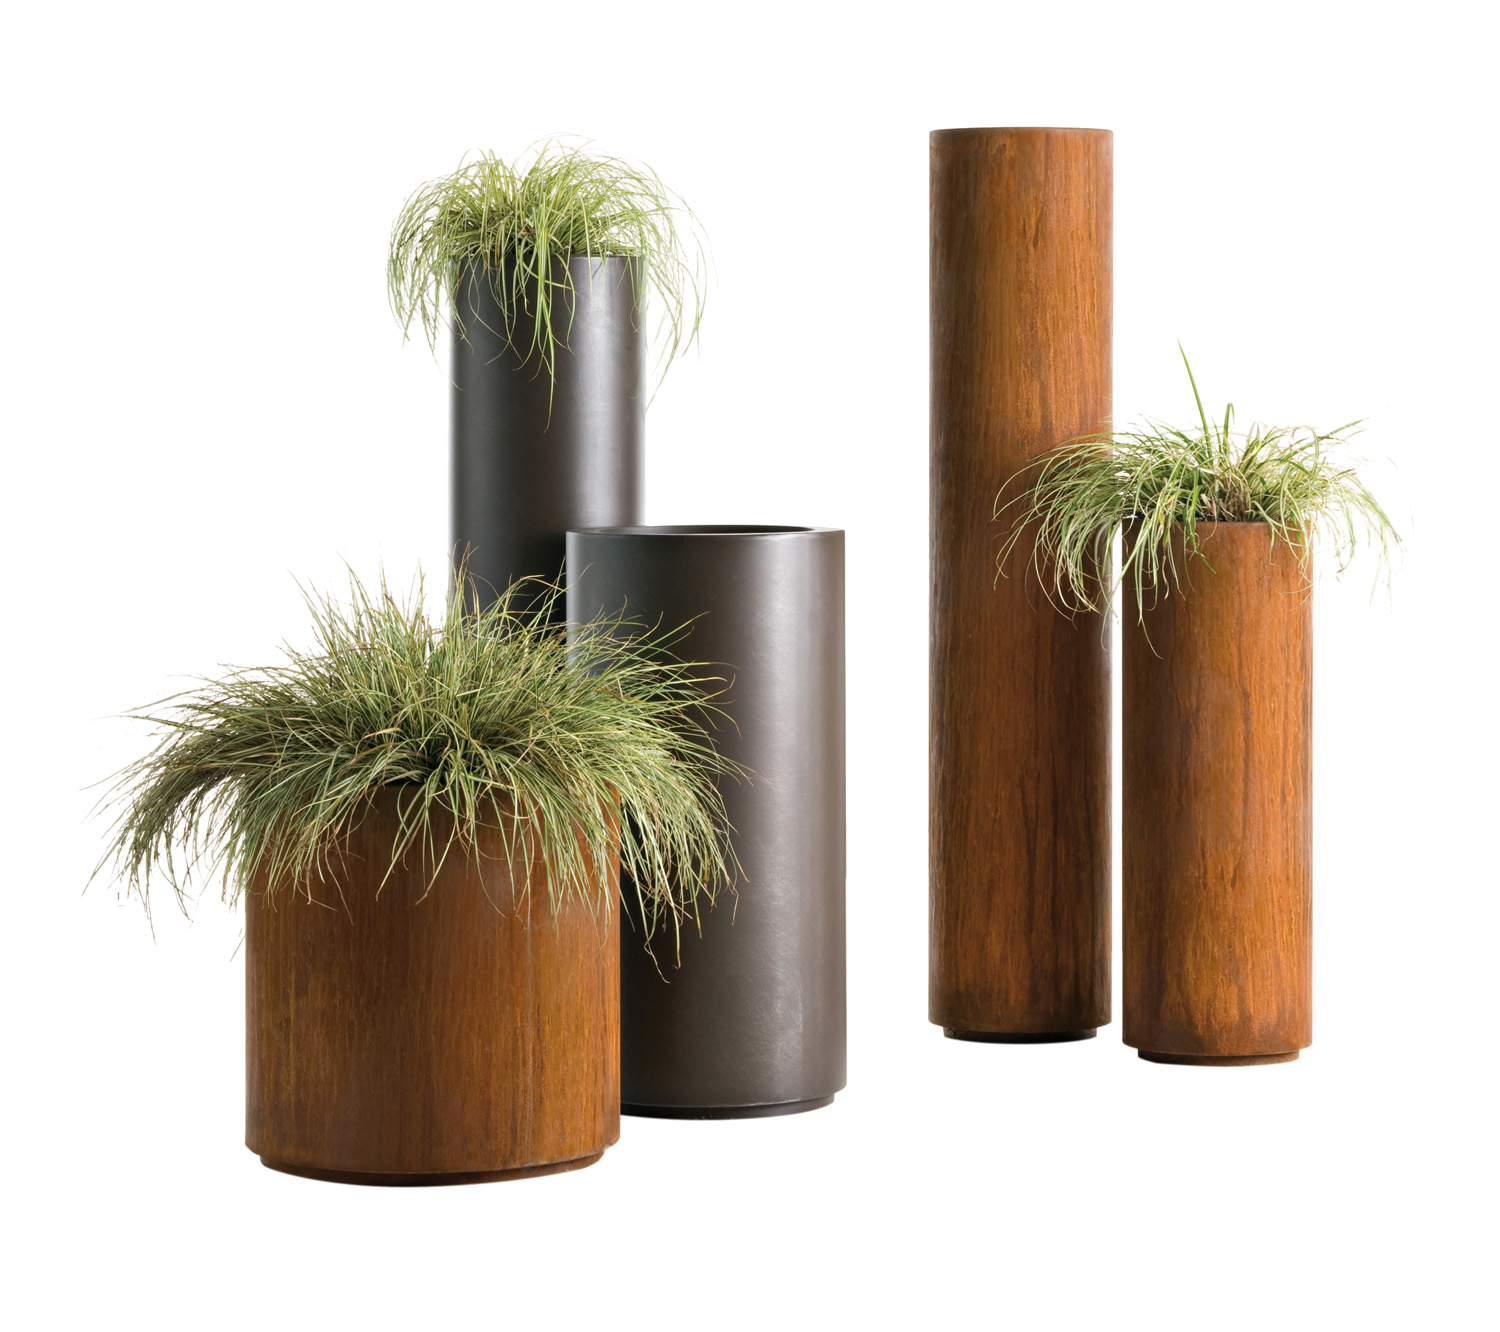 DeCastelli's Cohiba planters (in five heights) from Homeware Gallery www.hgfs.com.au